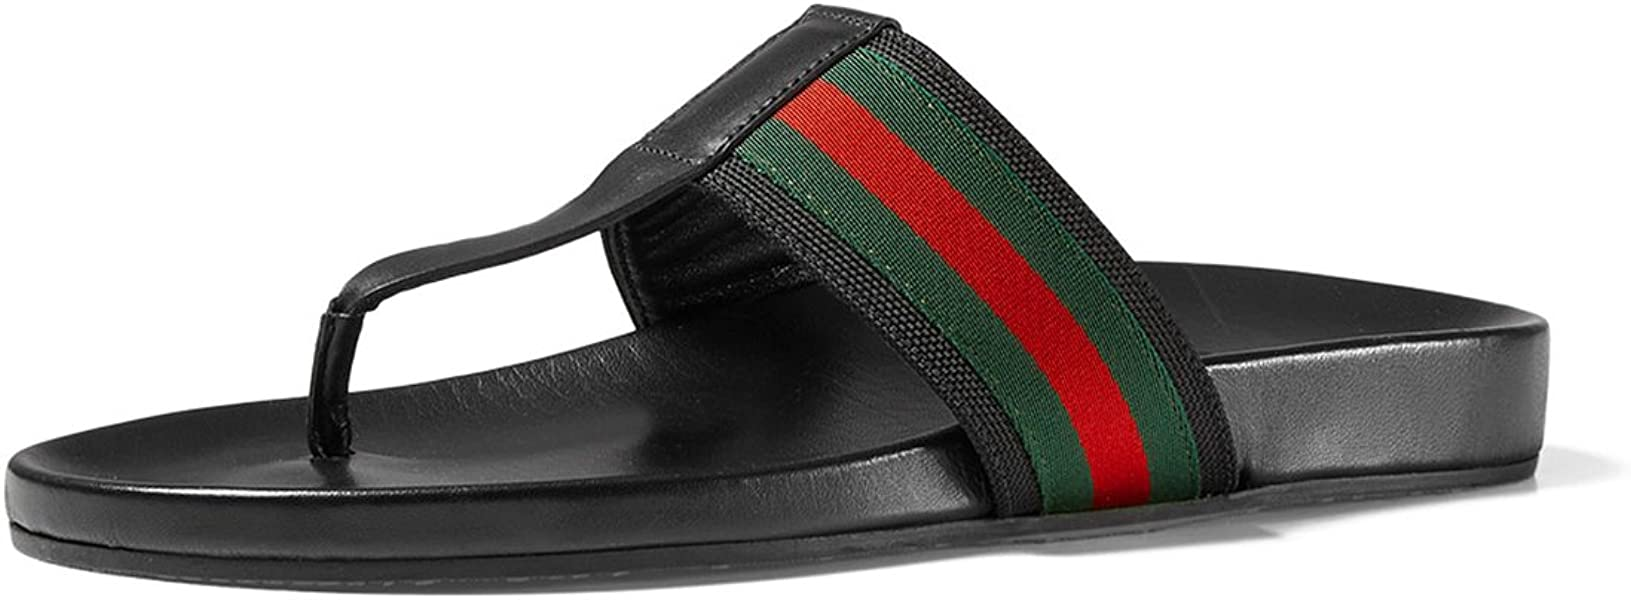 d92d65cb392b Amazon.com  Gucci Men s Web Strap Sandal